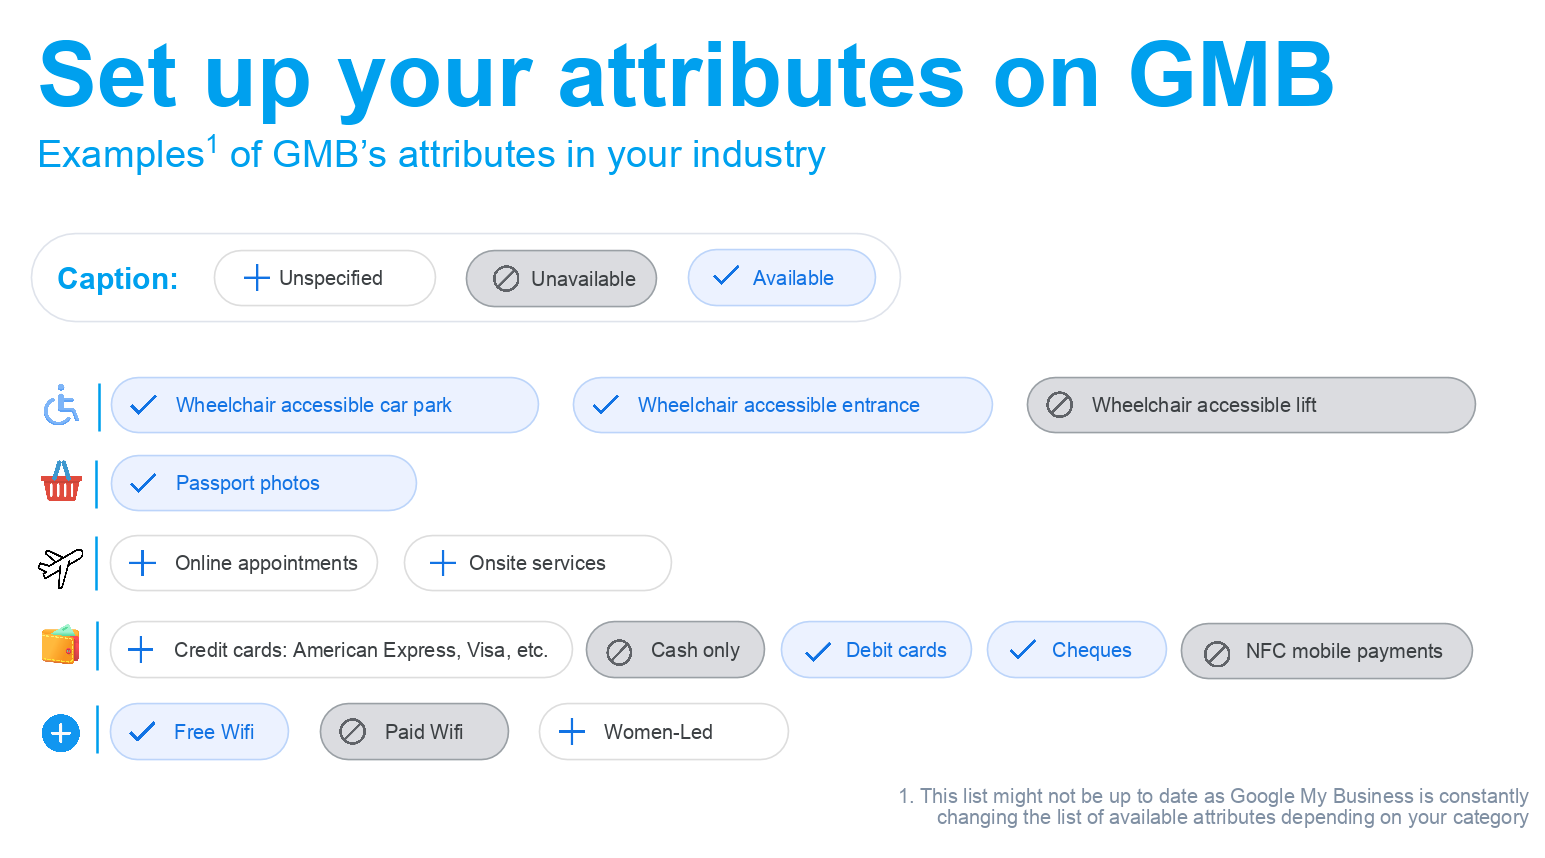 Attributes for travel companies on GMB